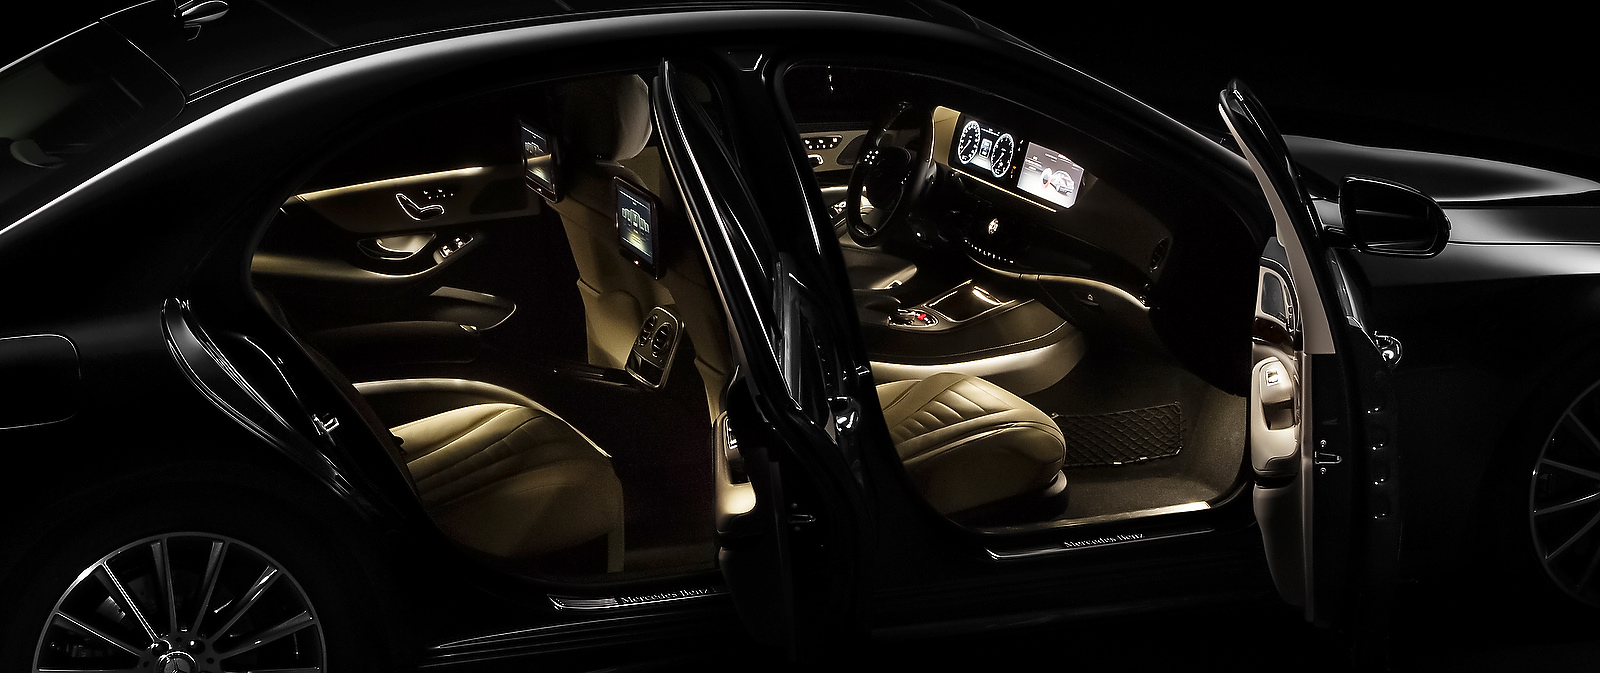 2014 Mercedes S Class Official Interior Photos Released Autoevolution